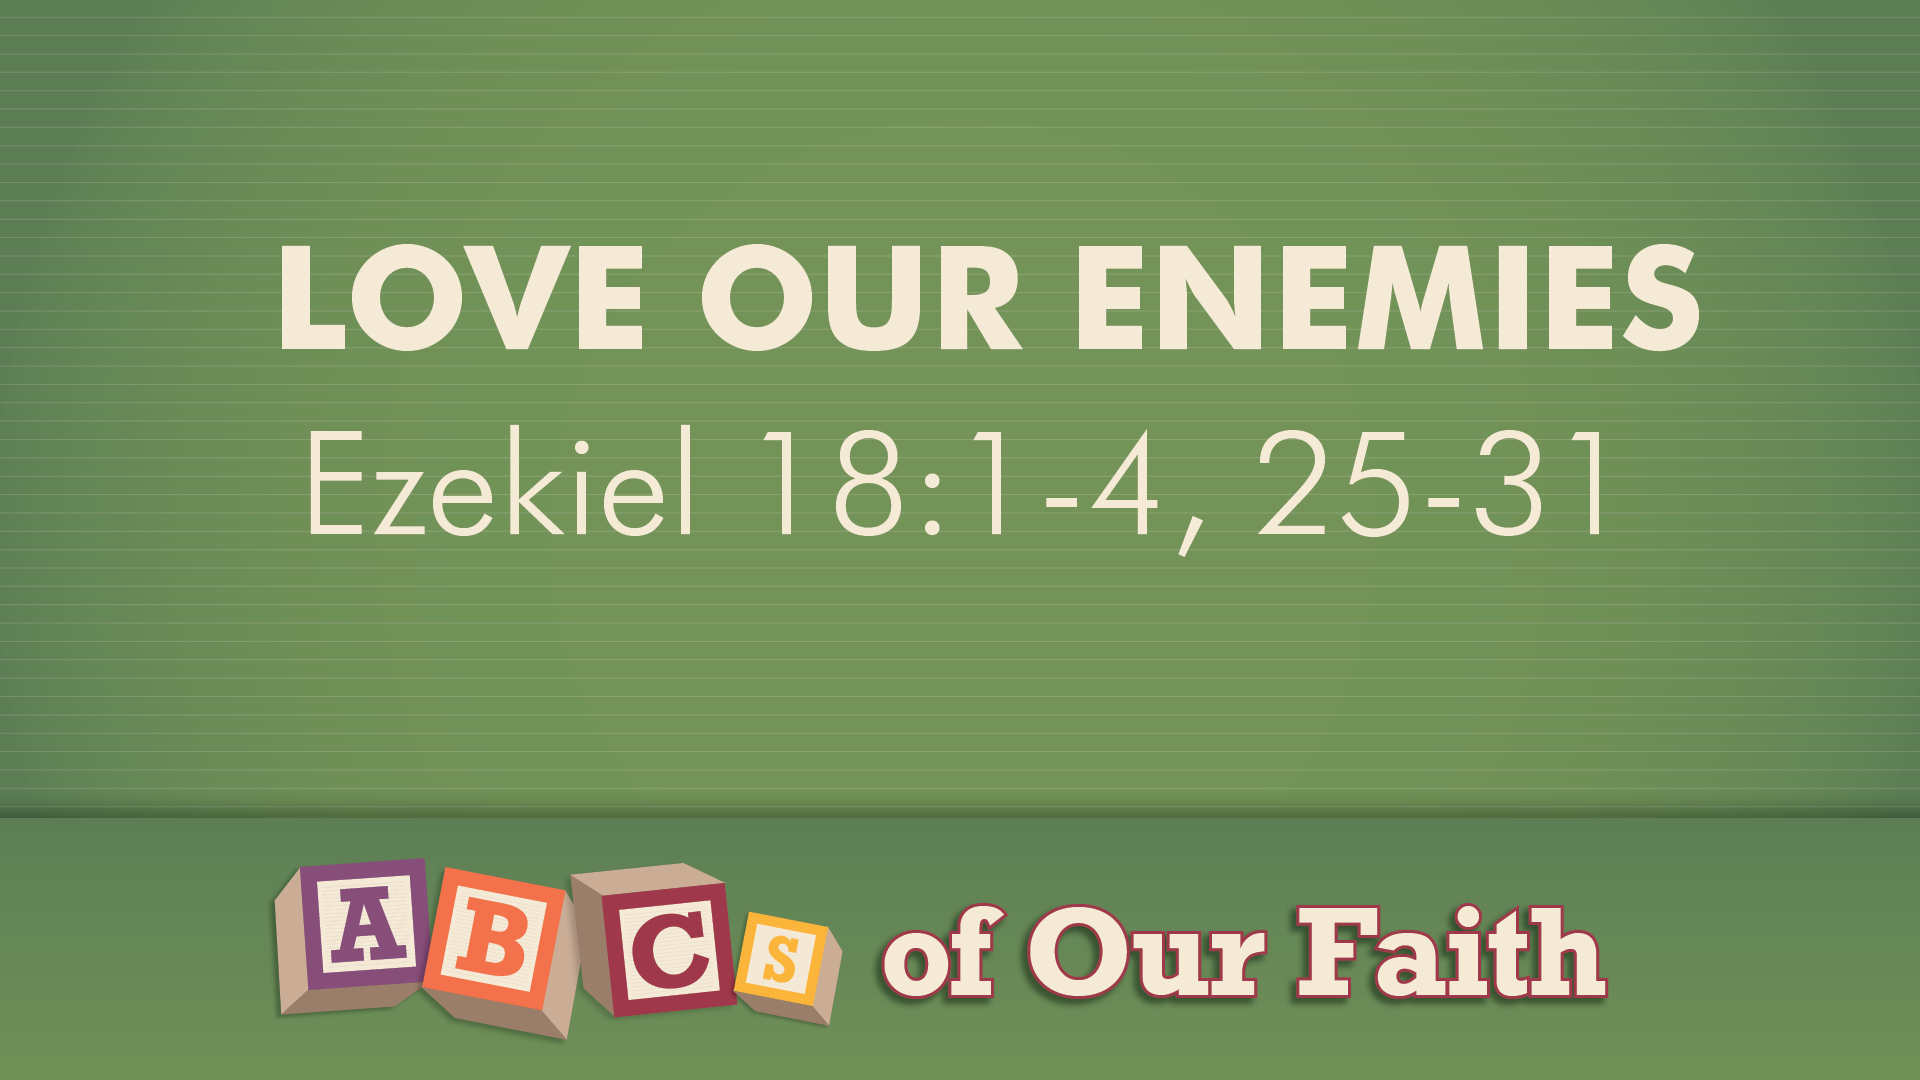 ABCs of our faith master graphic OCT25